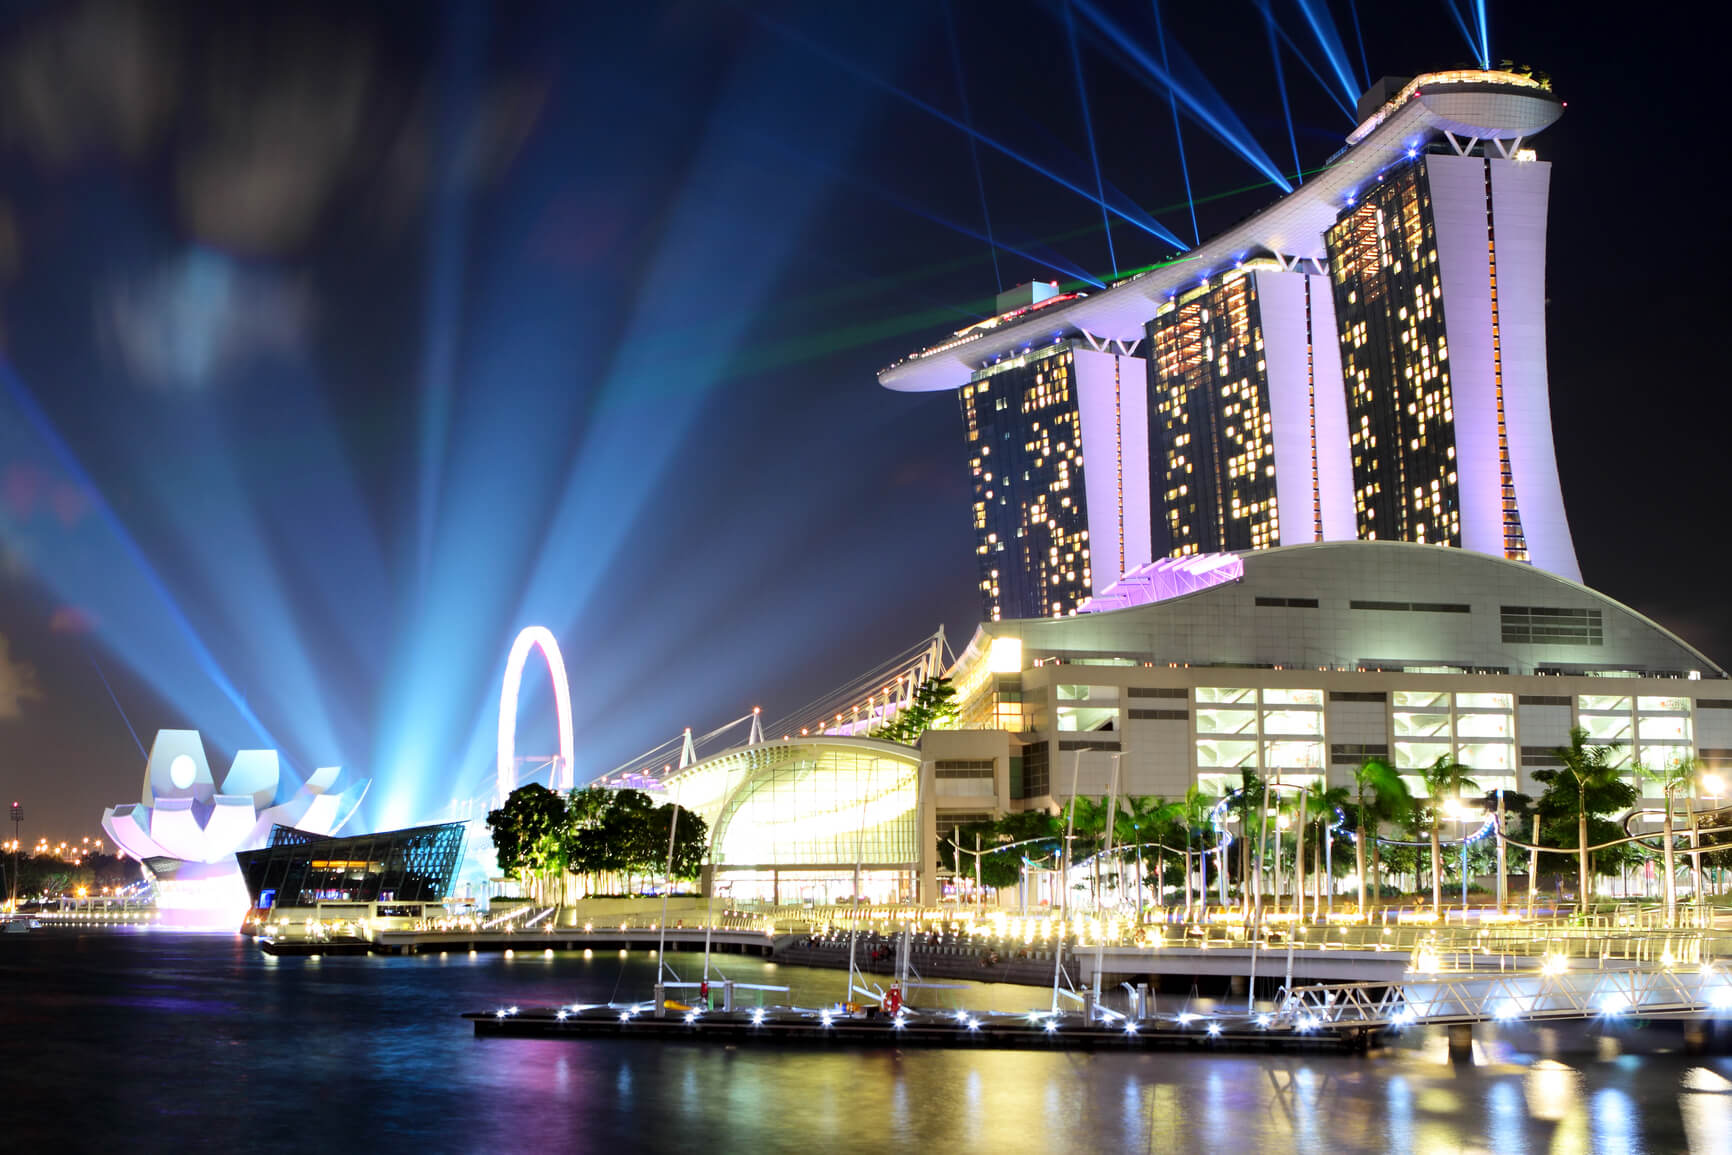 Non-stop from Perth, Australia to Singapore for only $497 AUD roundtrip